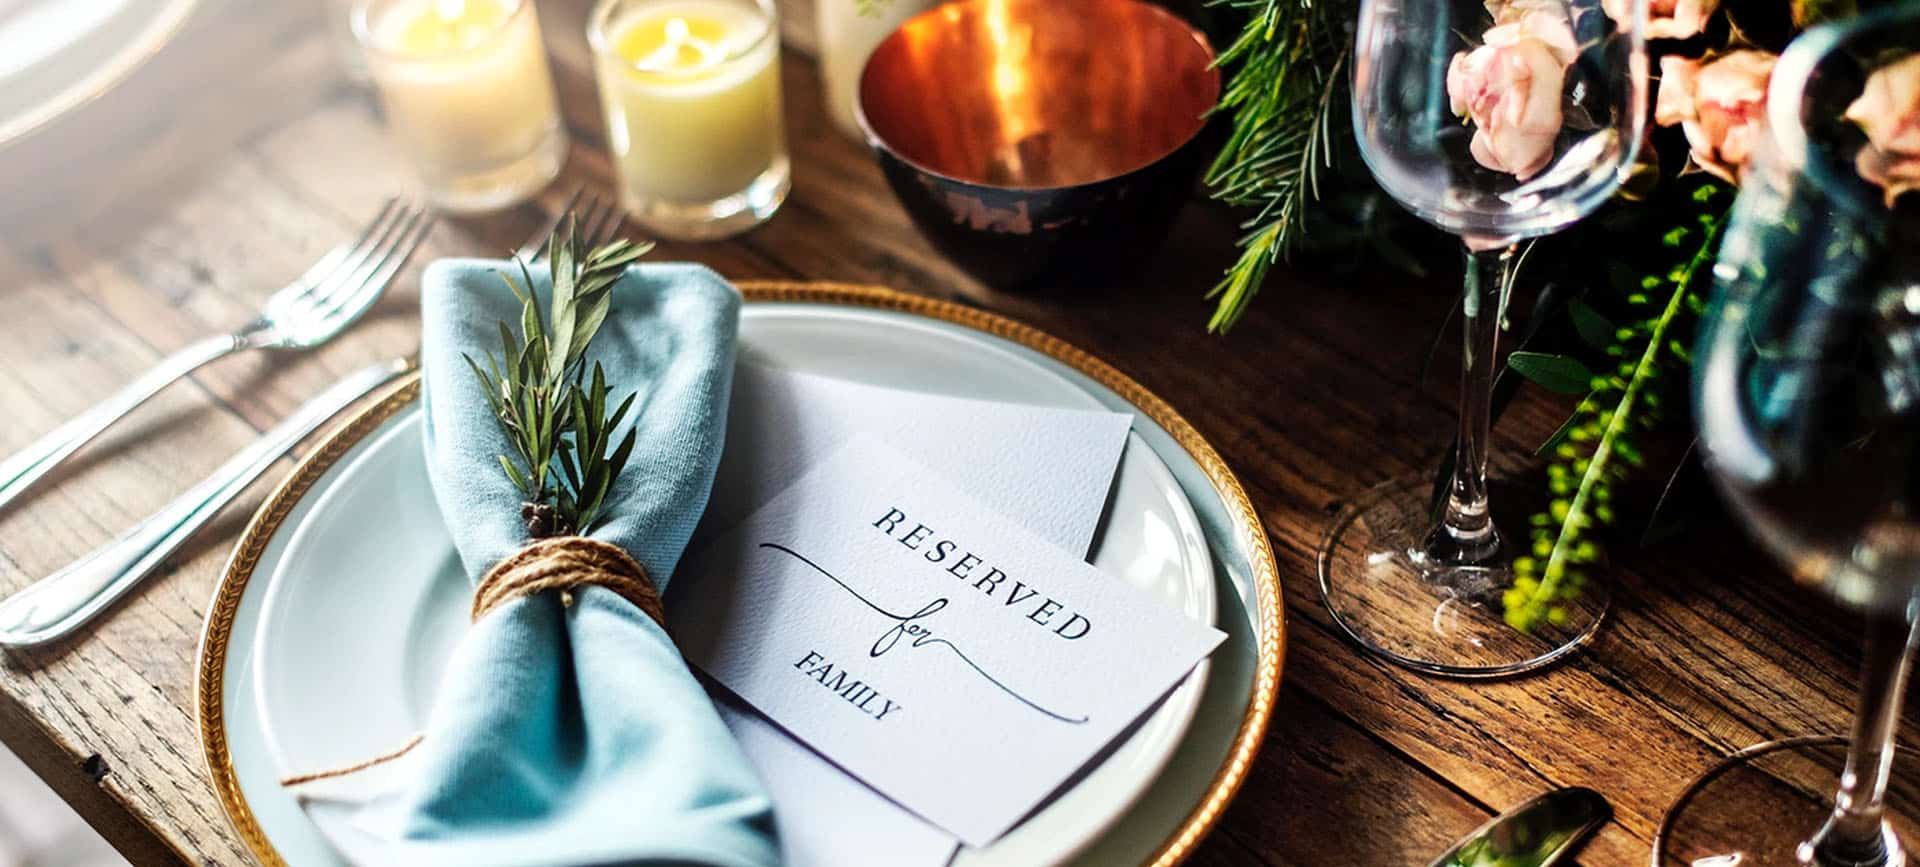 restaurant mayfair